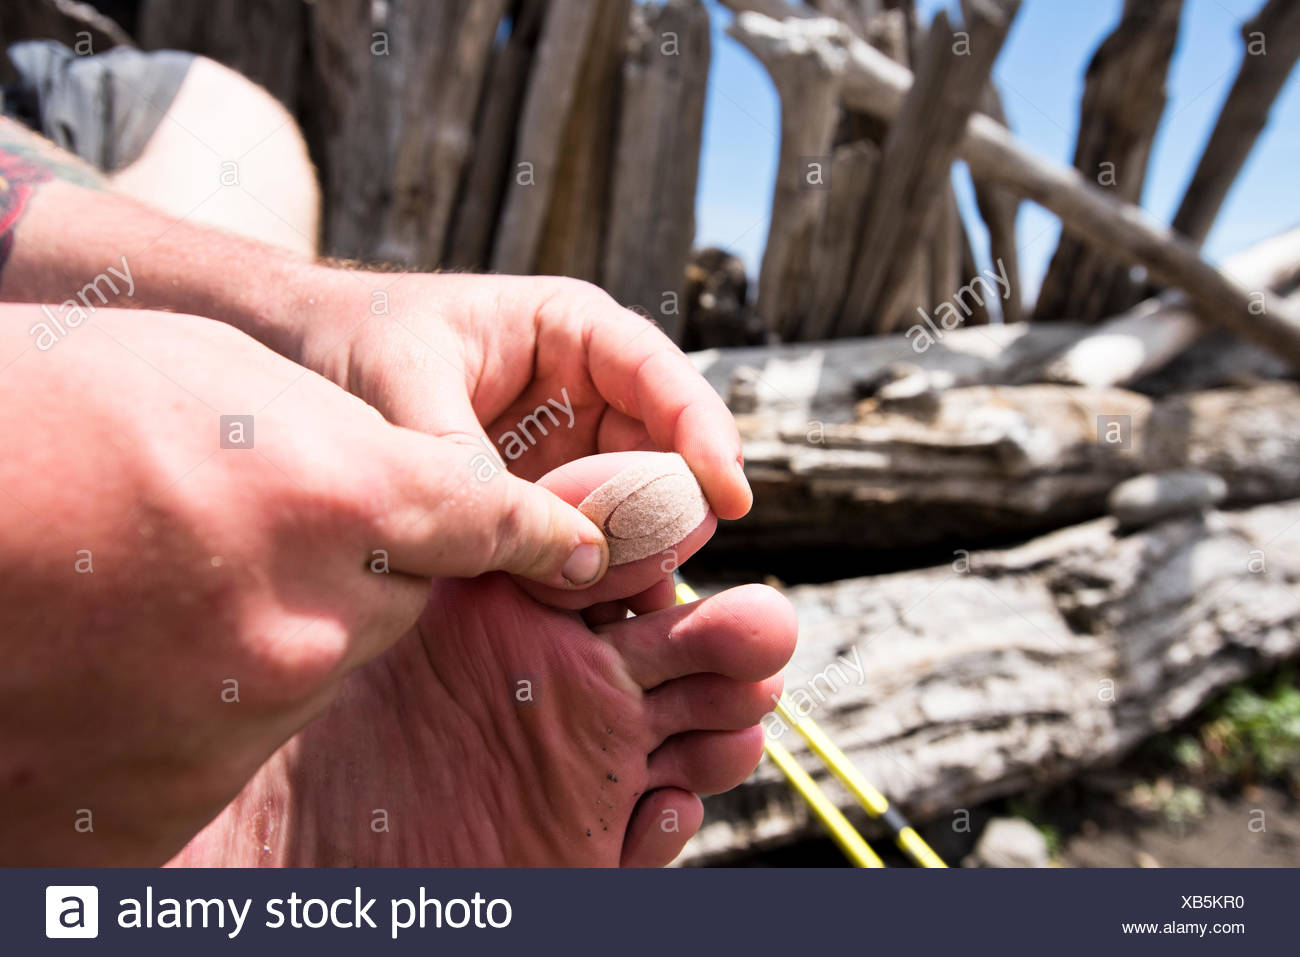 A hiker covering his blisters. - Stock Image